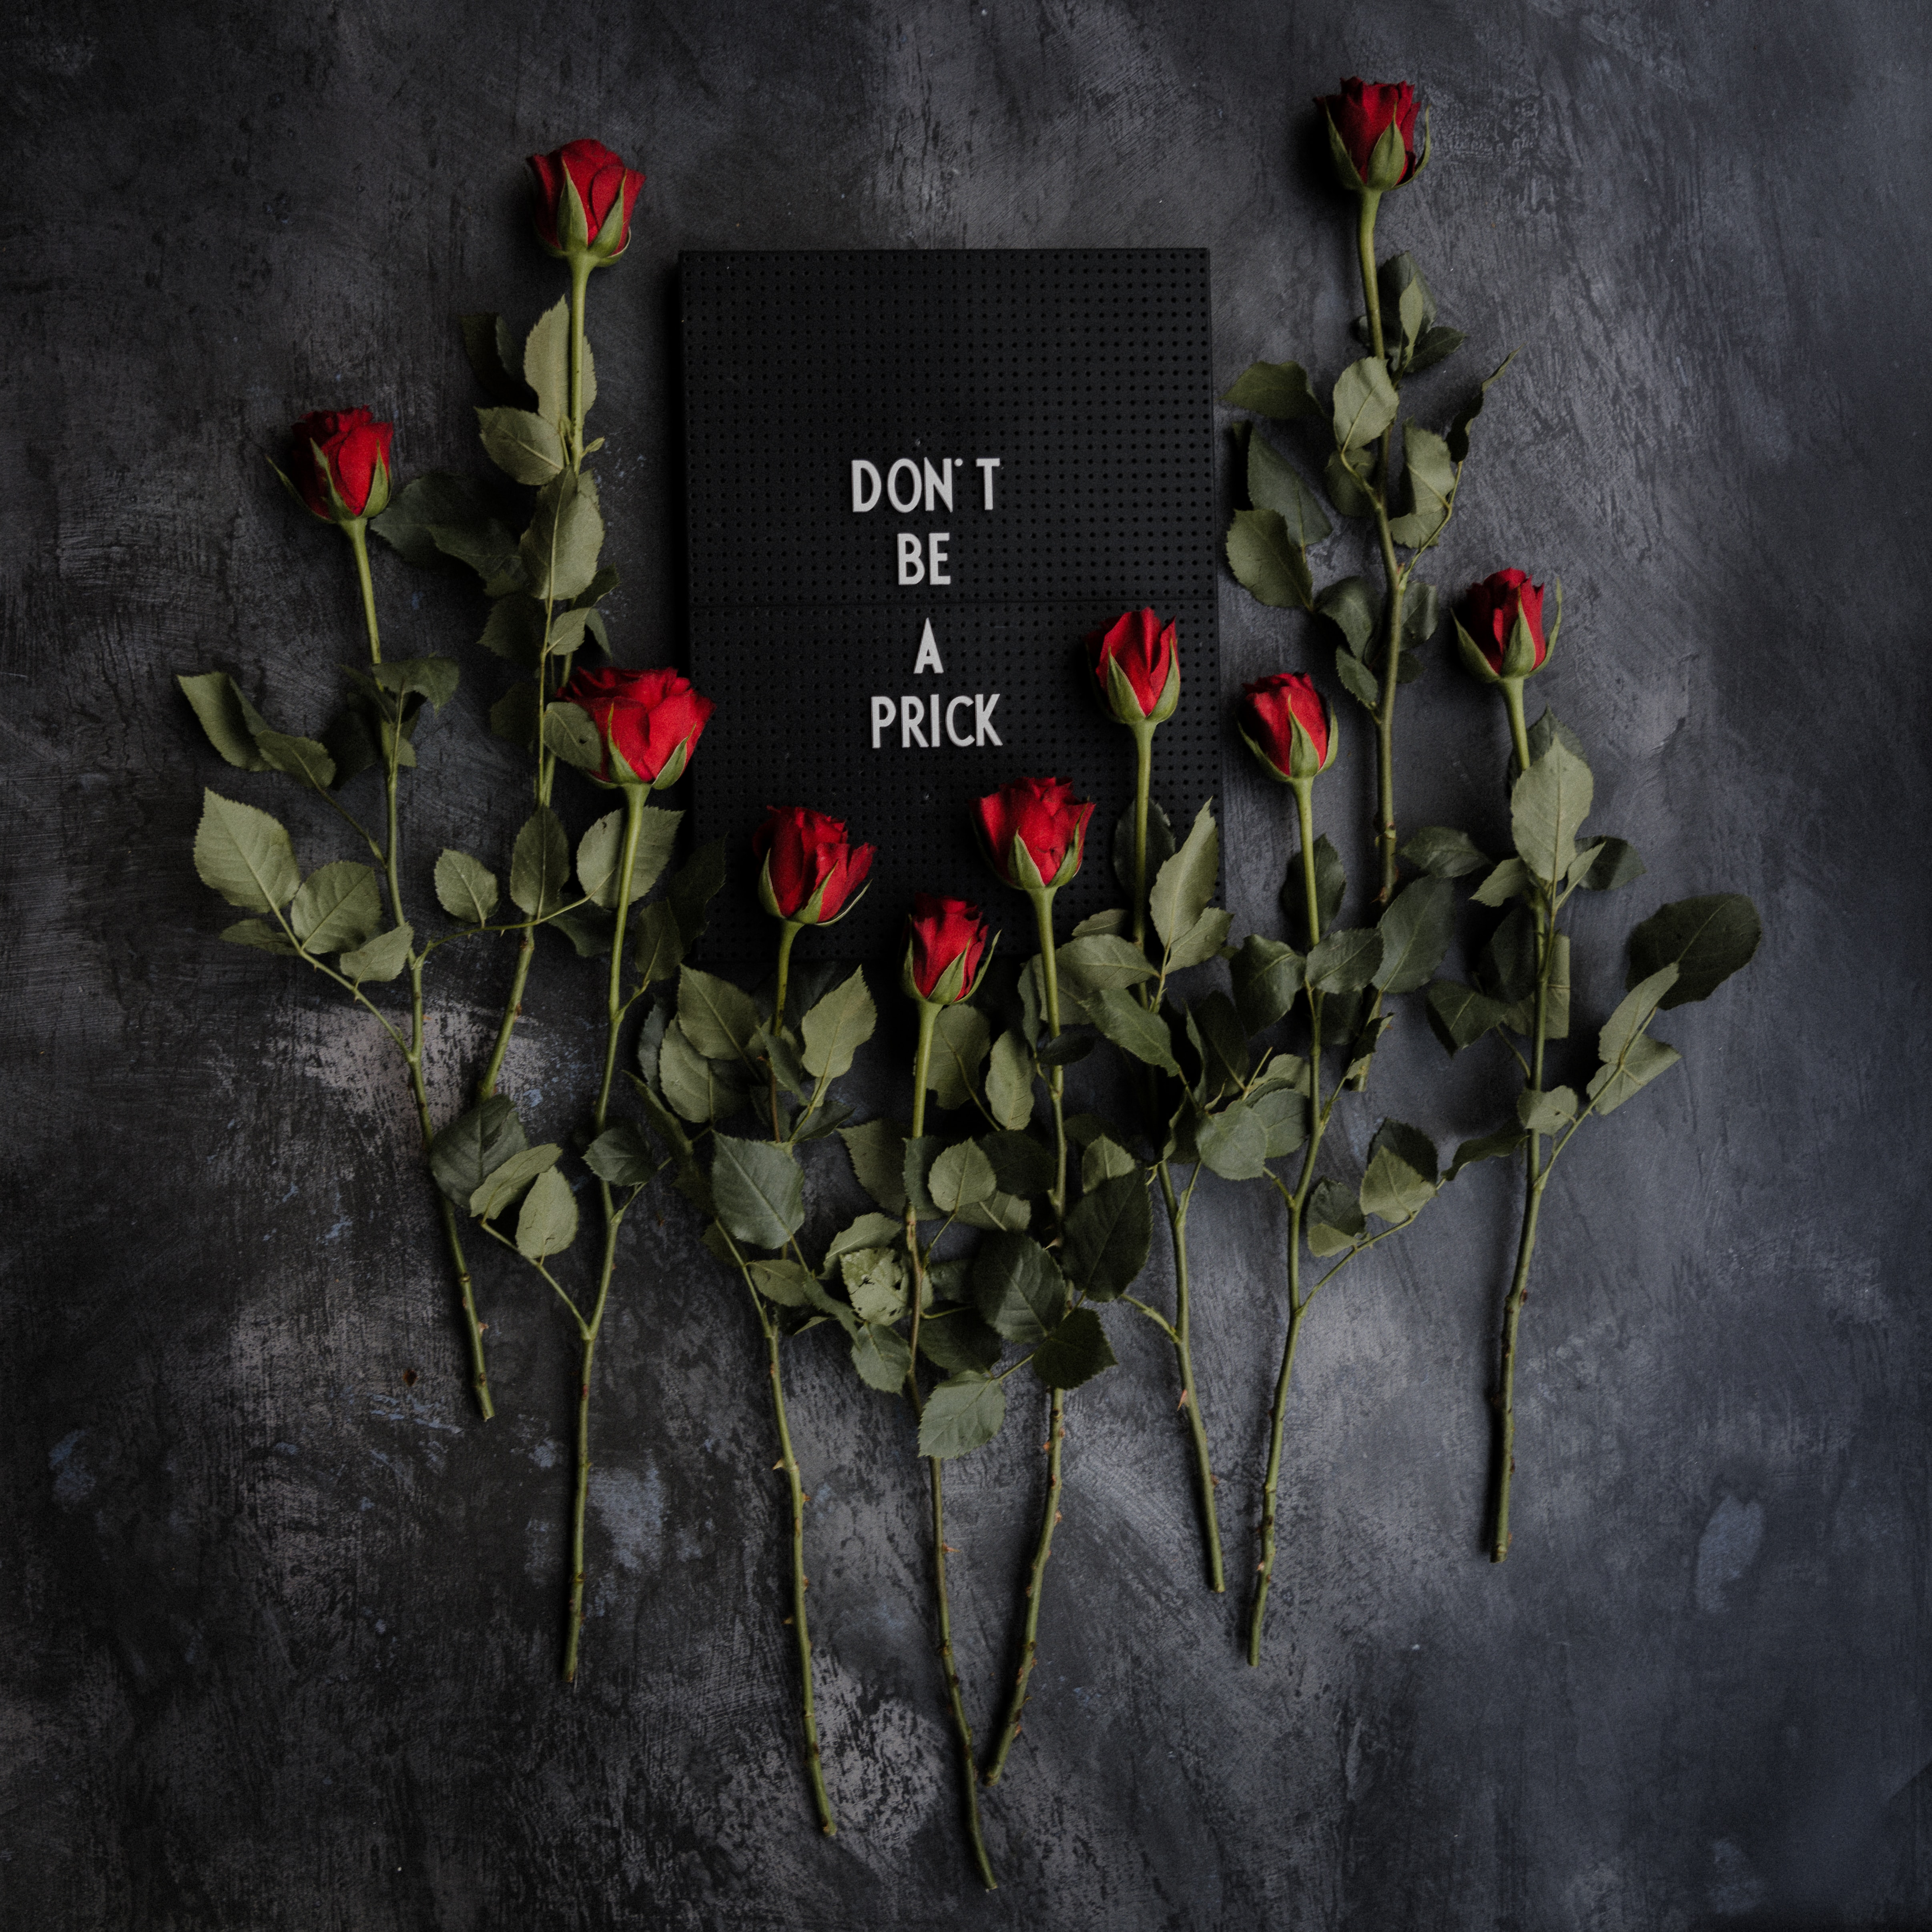 70616 free wallpaper 360x640 for phone, download images Words, Flowers, Roses, Inscription, Nameplate, Plate, Motivation 360x640 for mobile